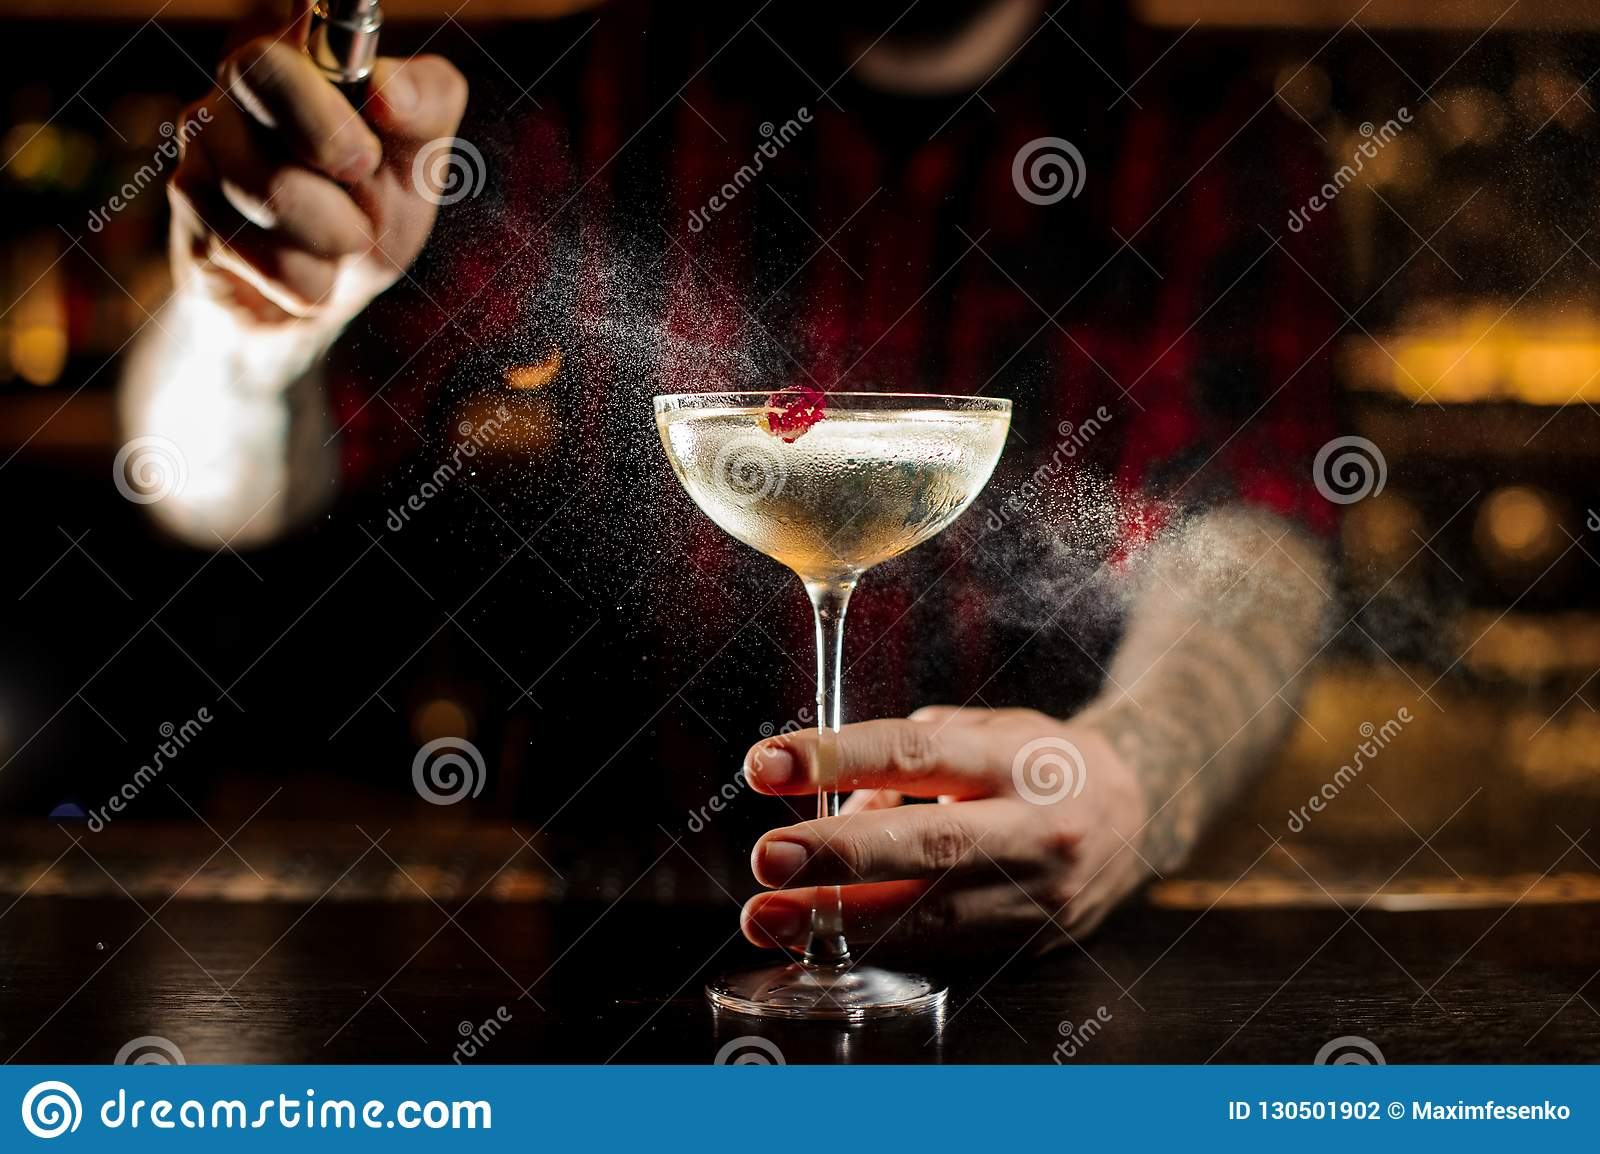 Bartender spraying on the Twinkle cocktail in the bar